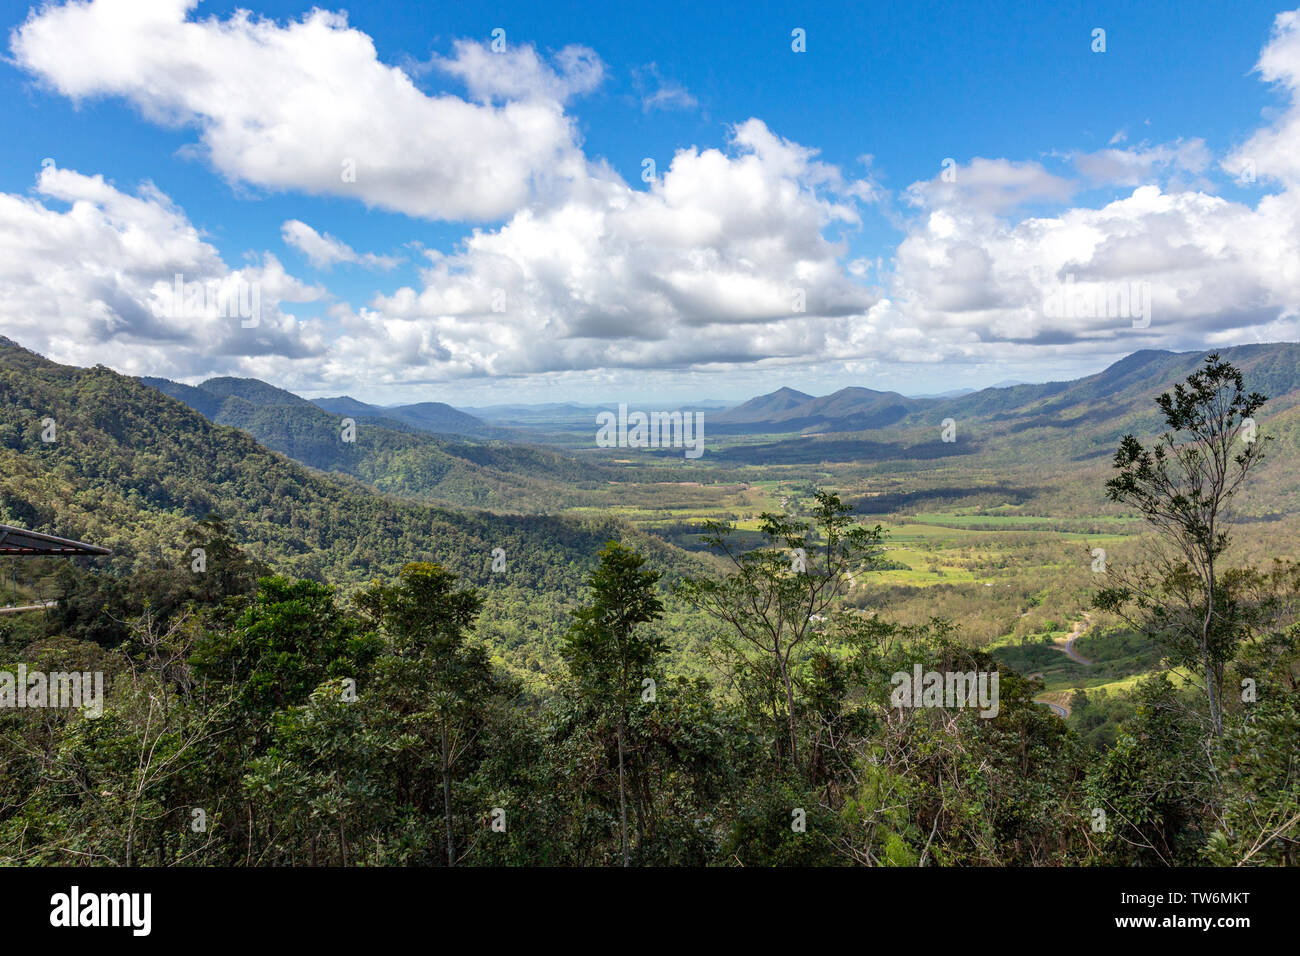 The Pioneer Valley is the gateway to Eungella, and encompasses many rural townships and sights to see along the way. Devastated by bushfires in 2019 Stock Photo